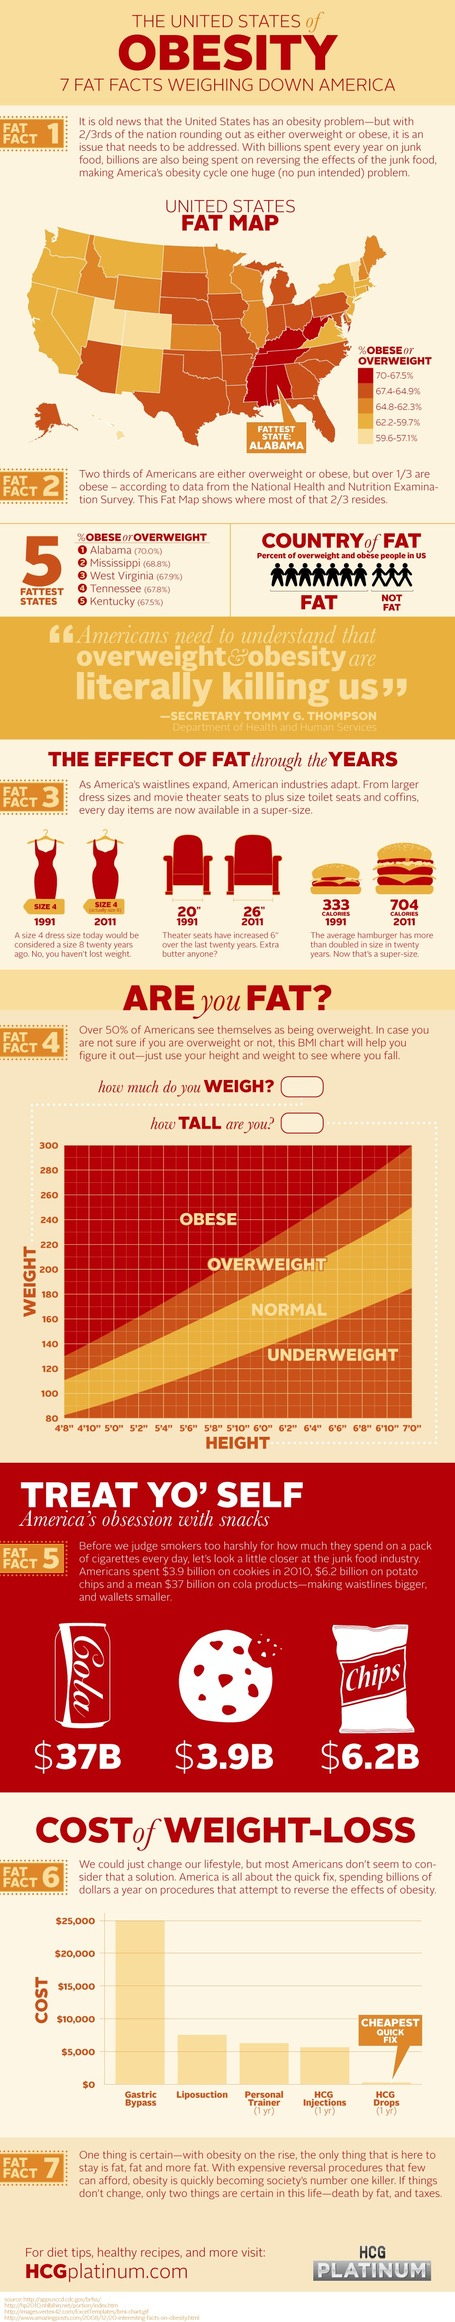 The United States of Obesity Infographic | Nutrition topics | Scoop.it